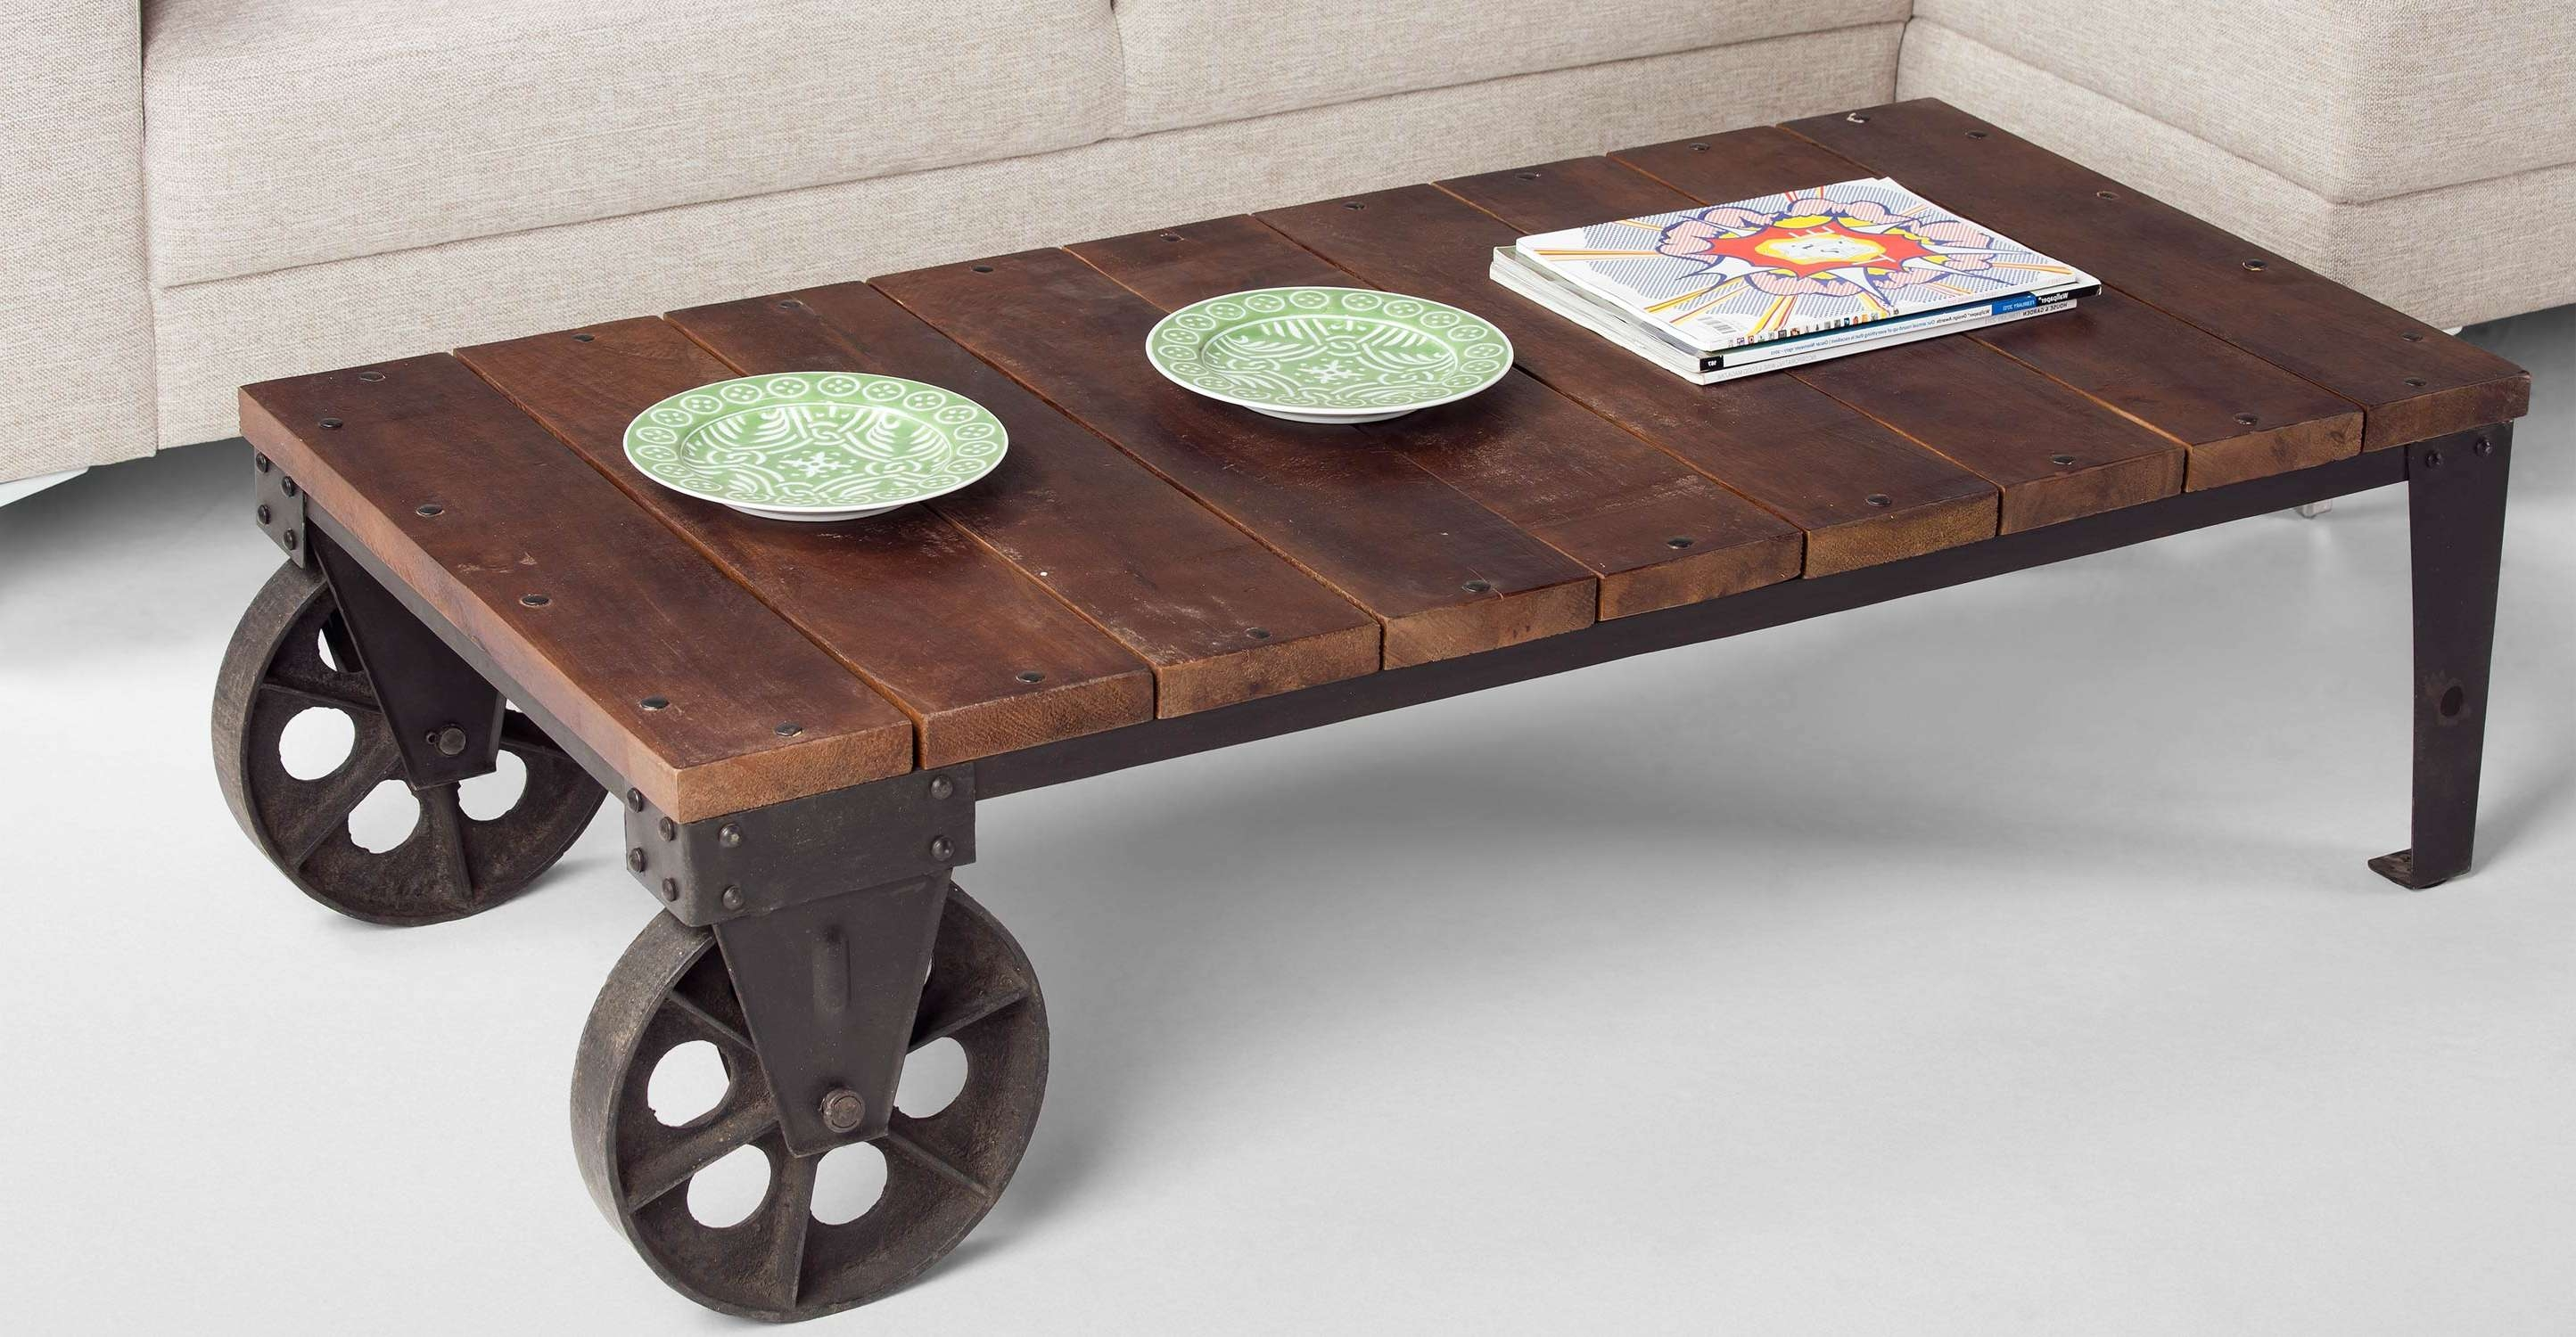 Coffee Tables : Fabulous Industrial Coffee Table On Wheels For In Most Current Coffee Tables With Wheels (View 9 of 20)